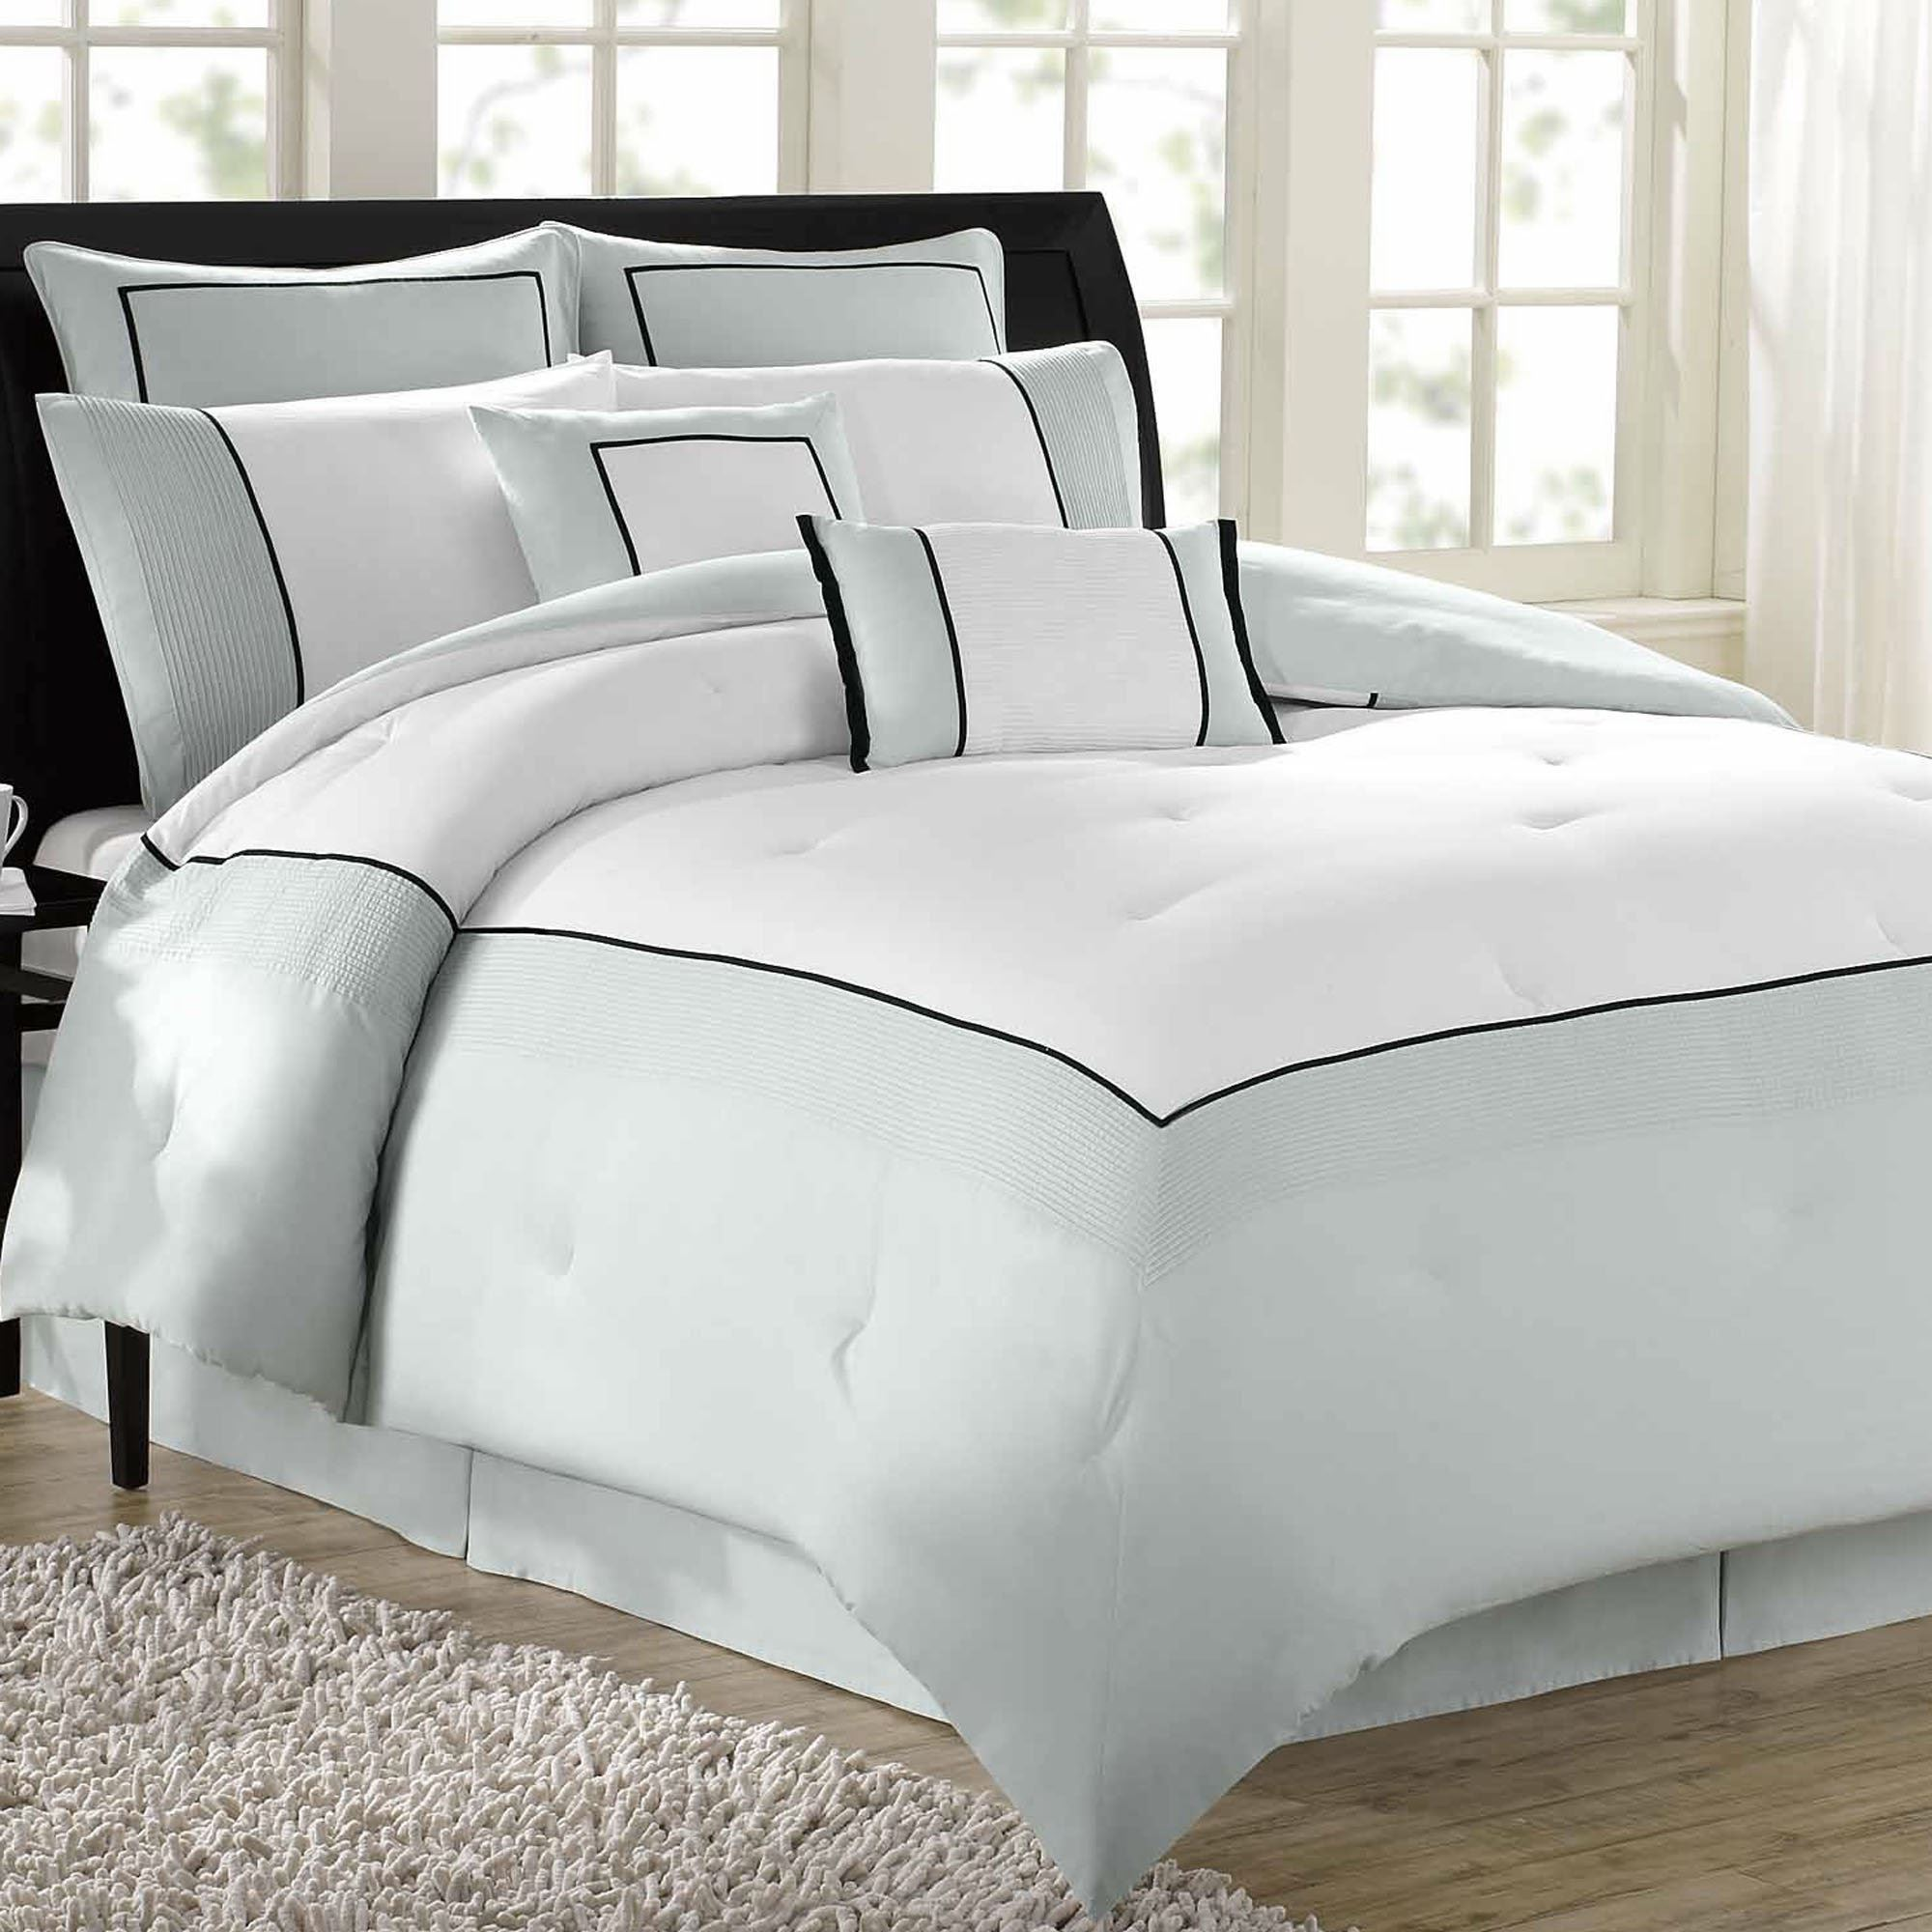 ivory davenport p scroll set comforter bedding hotel collection